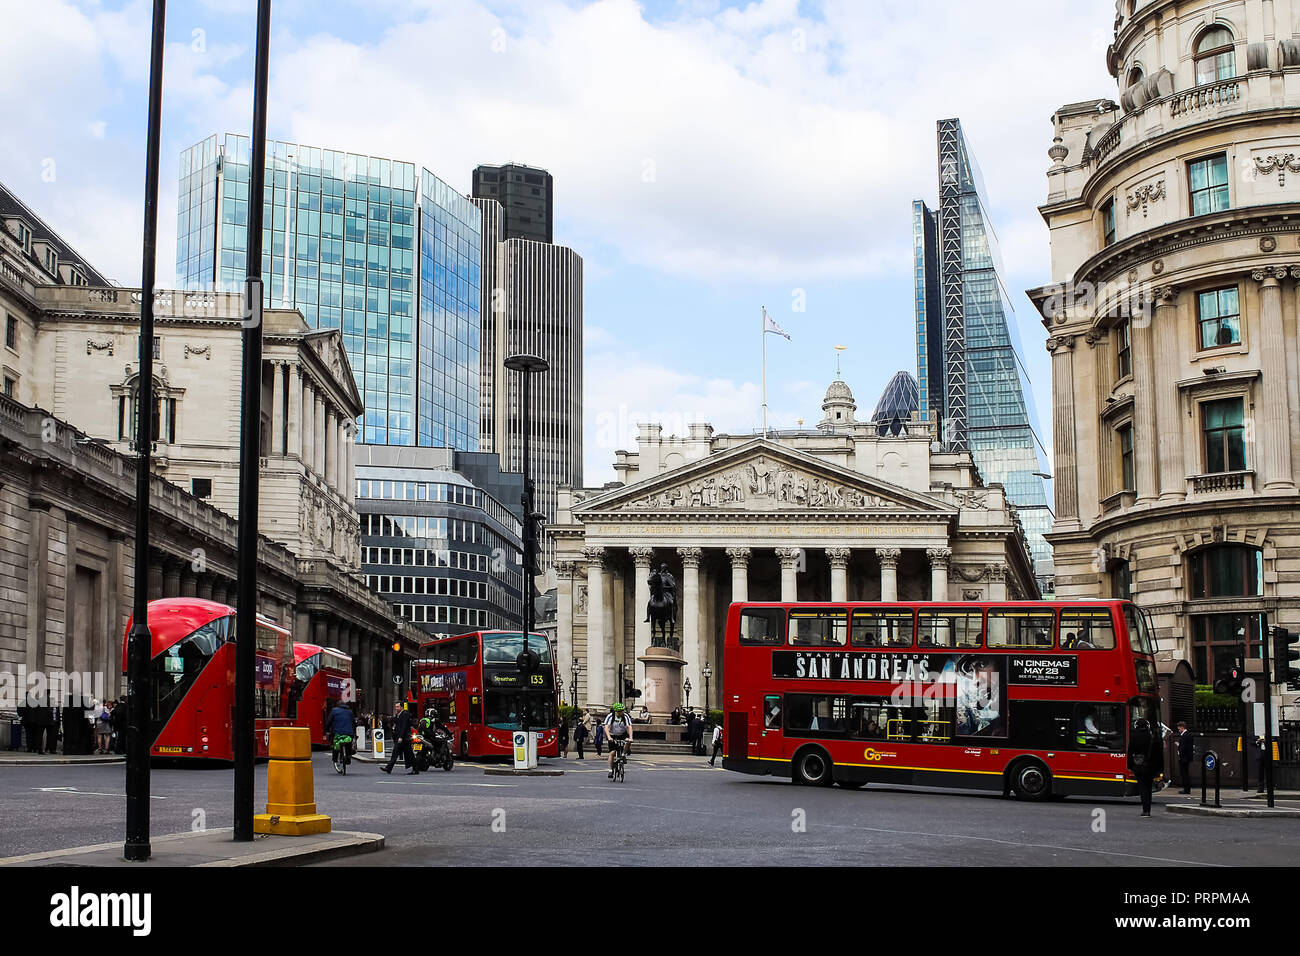 London, England, UK - MAY 26, 2015: The Royal Exchange at Cornhill and Threadneedle street, Bank junction, Bank financial district, City of London, Un - Stock Image